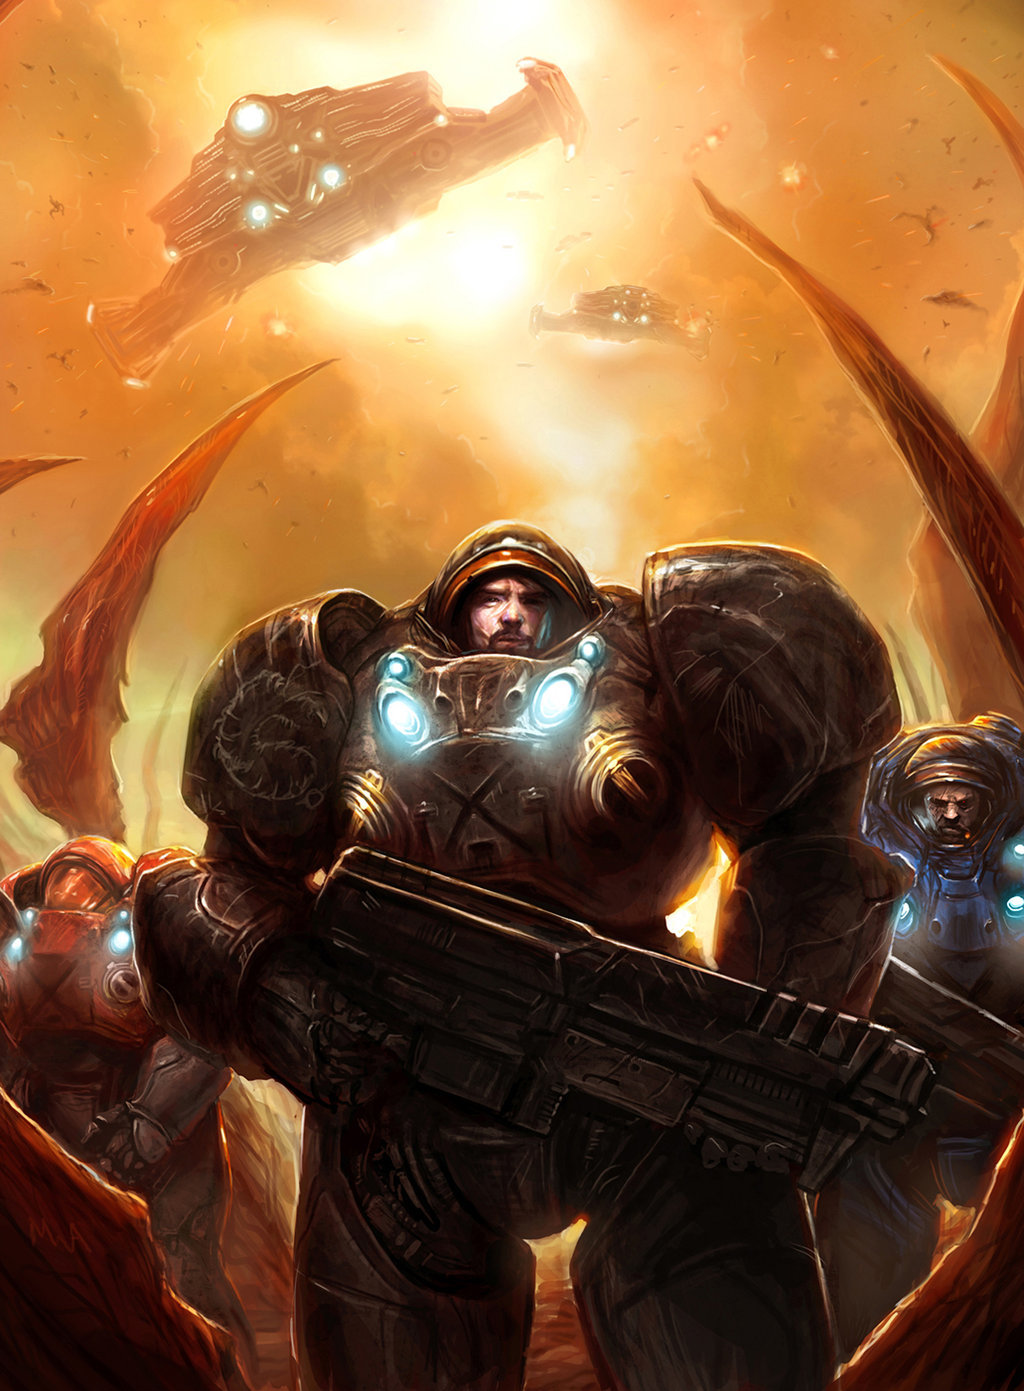 Michael antrim starcraft 2 all in by thechaoticknight d2vwmv5